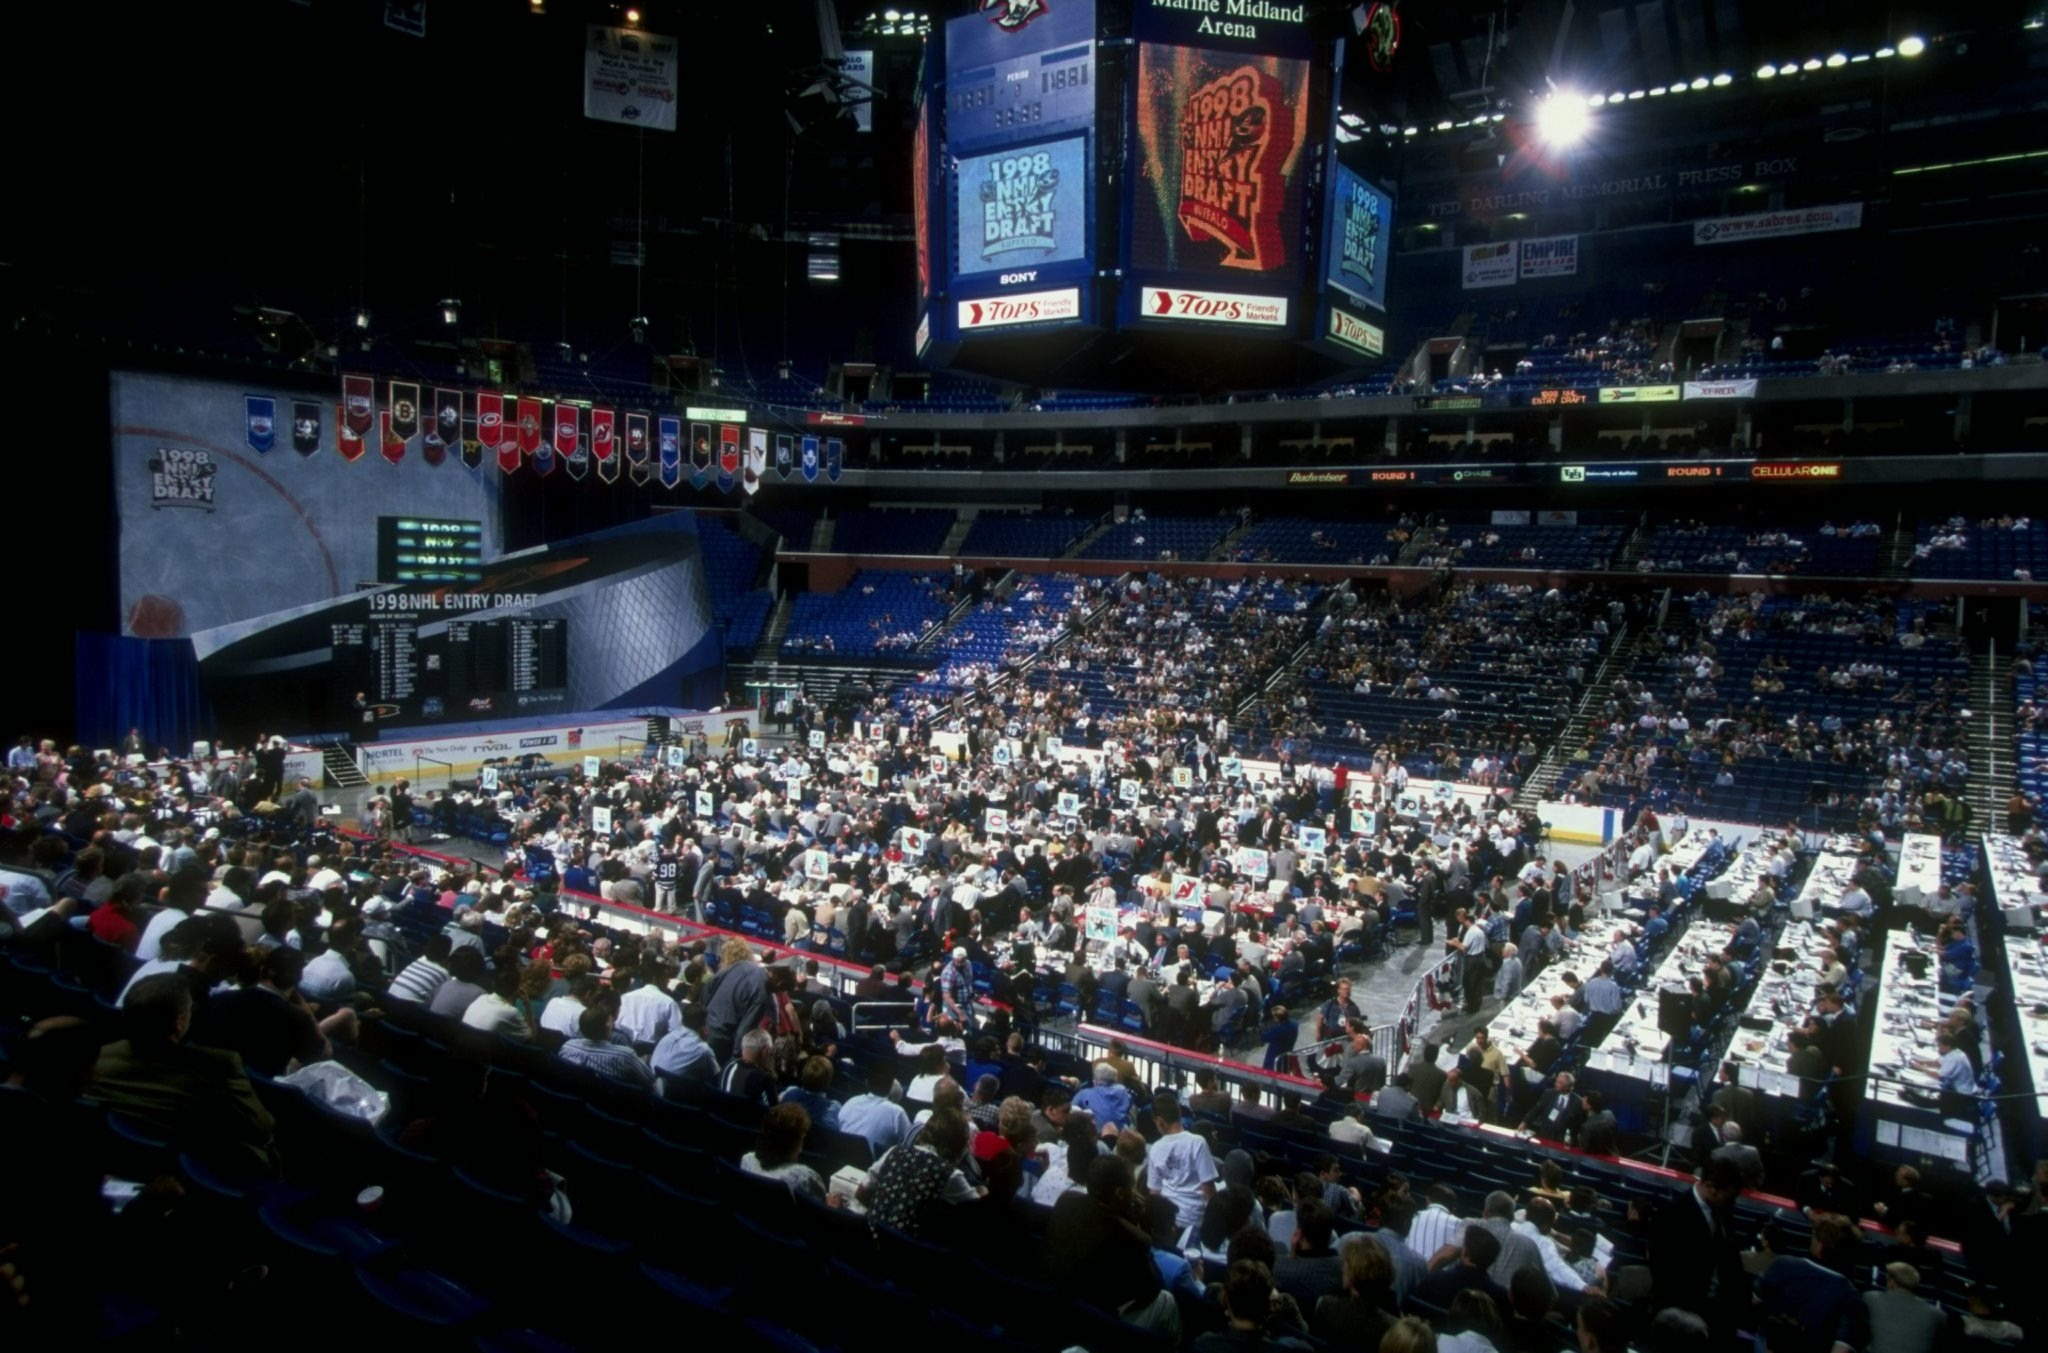 There was no lack of spectator seating  when the 1998 NHL Draft was held at Marine Midland Arena. This time around, at what's now First Niagara Center, it's a sellout.